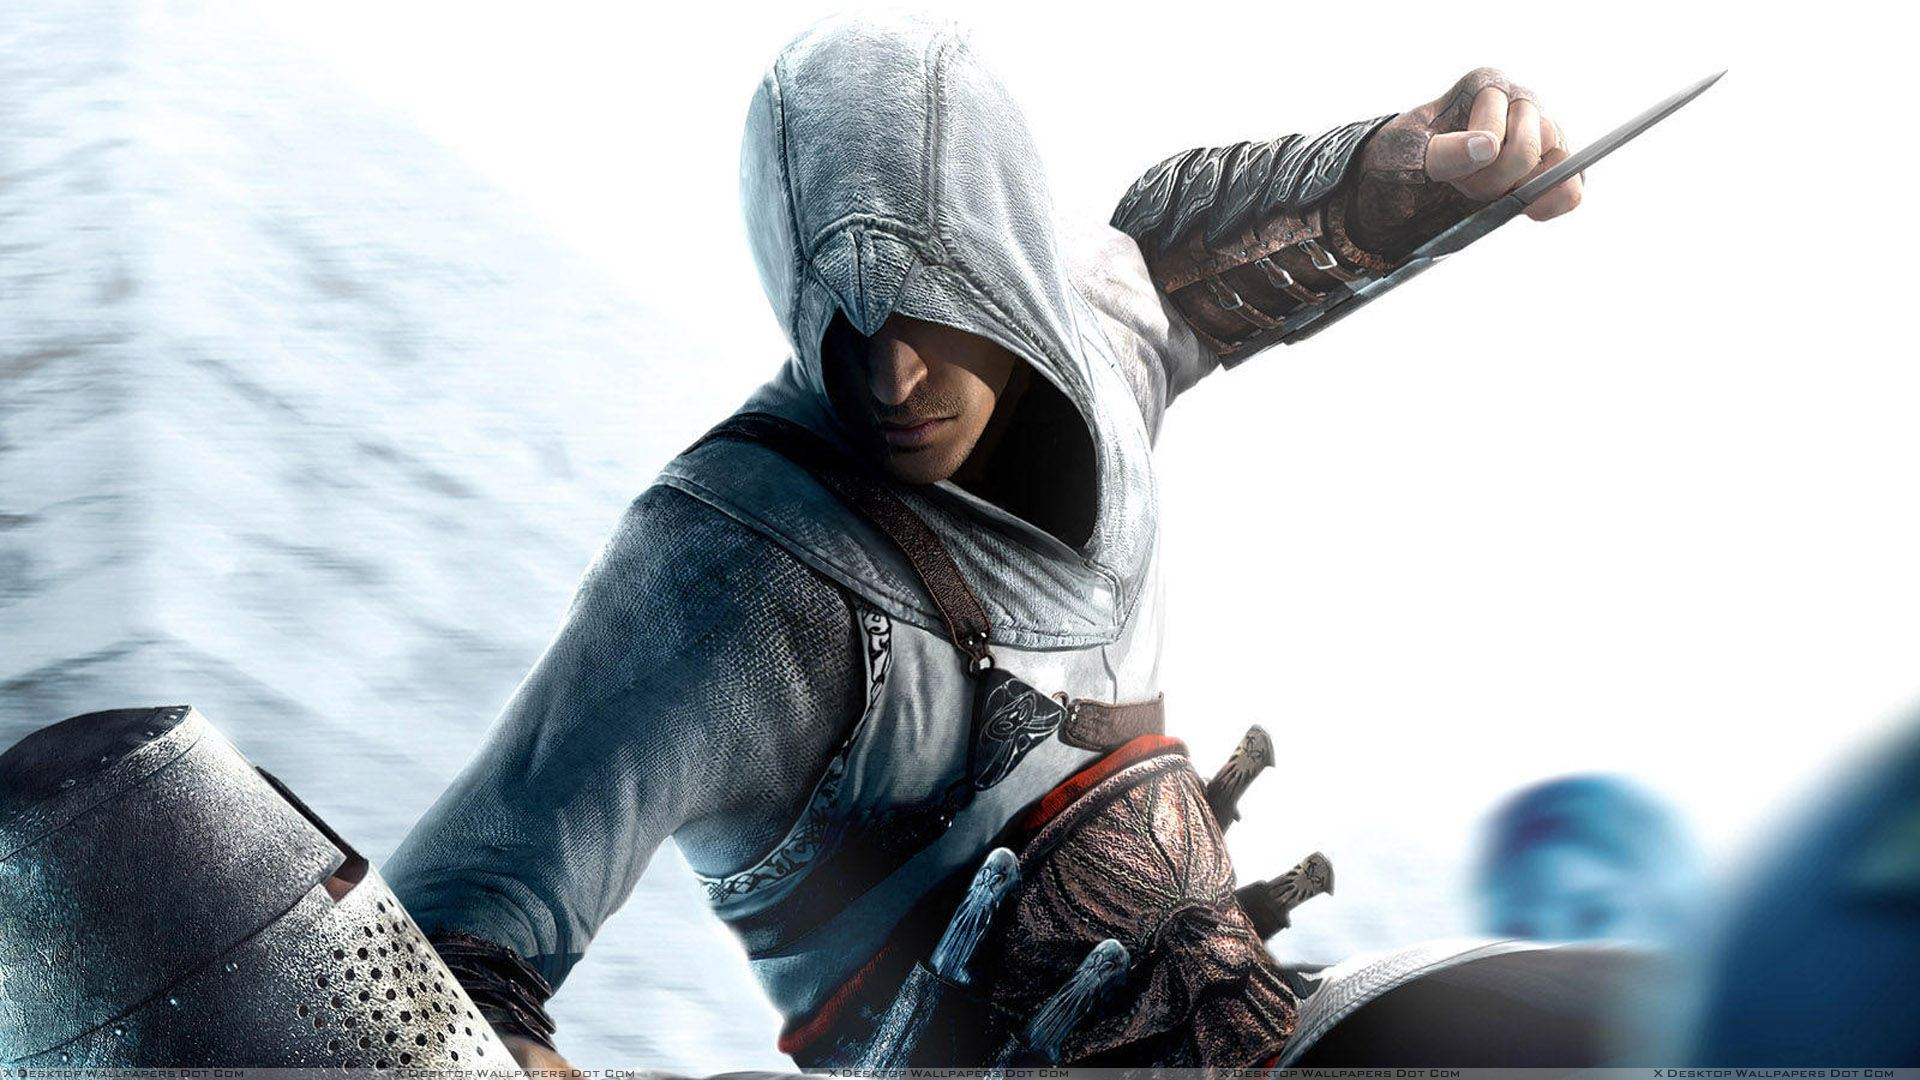 assassins creed attacking with blade wallpaper